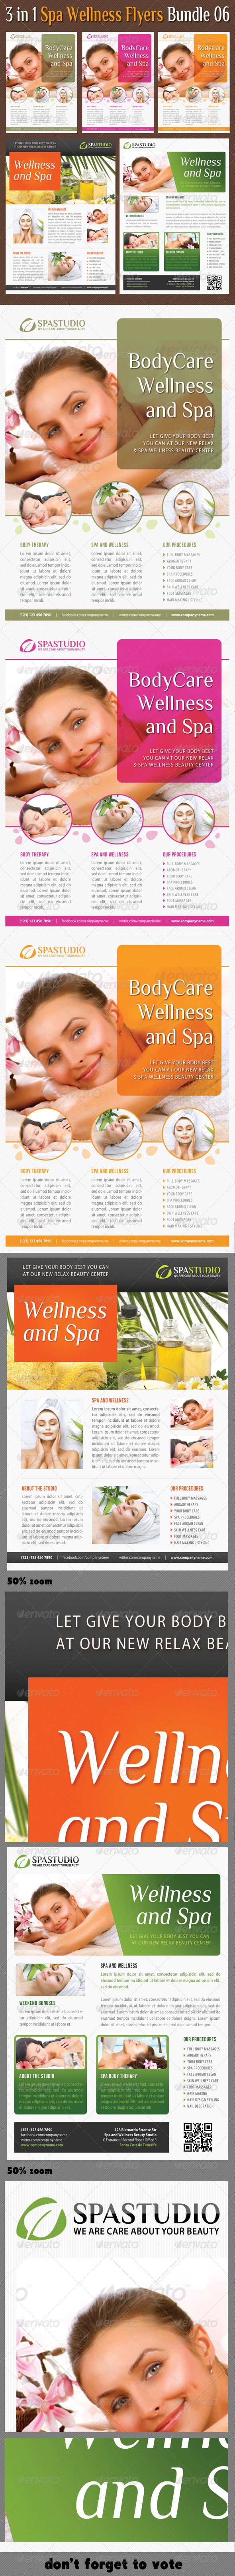 GraphicRiver 3 in 1 Spa Wellness Flyers Bundle 06 7292835